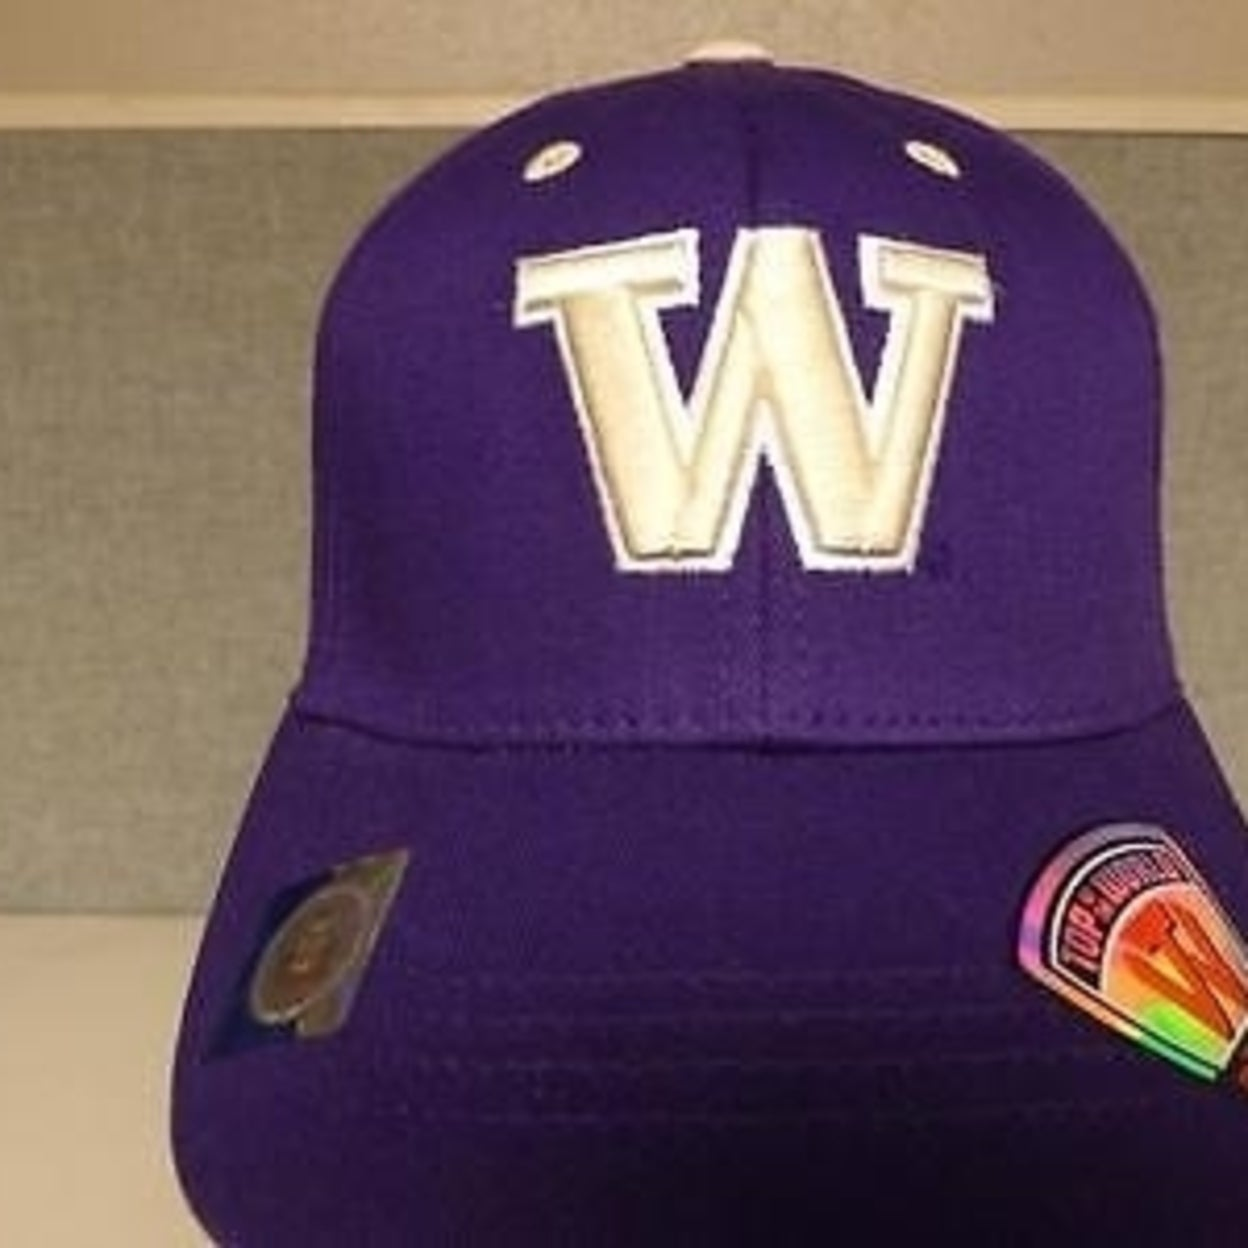 062df76f Washington Huskies Kids Youth Size 6 1/2 to 6 7/8 Fitted Cap Hat